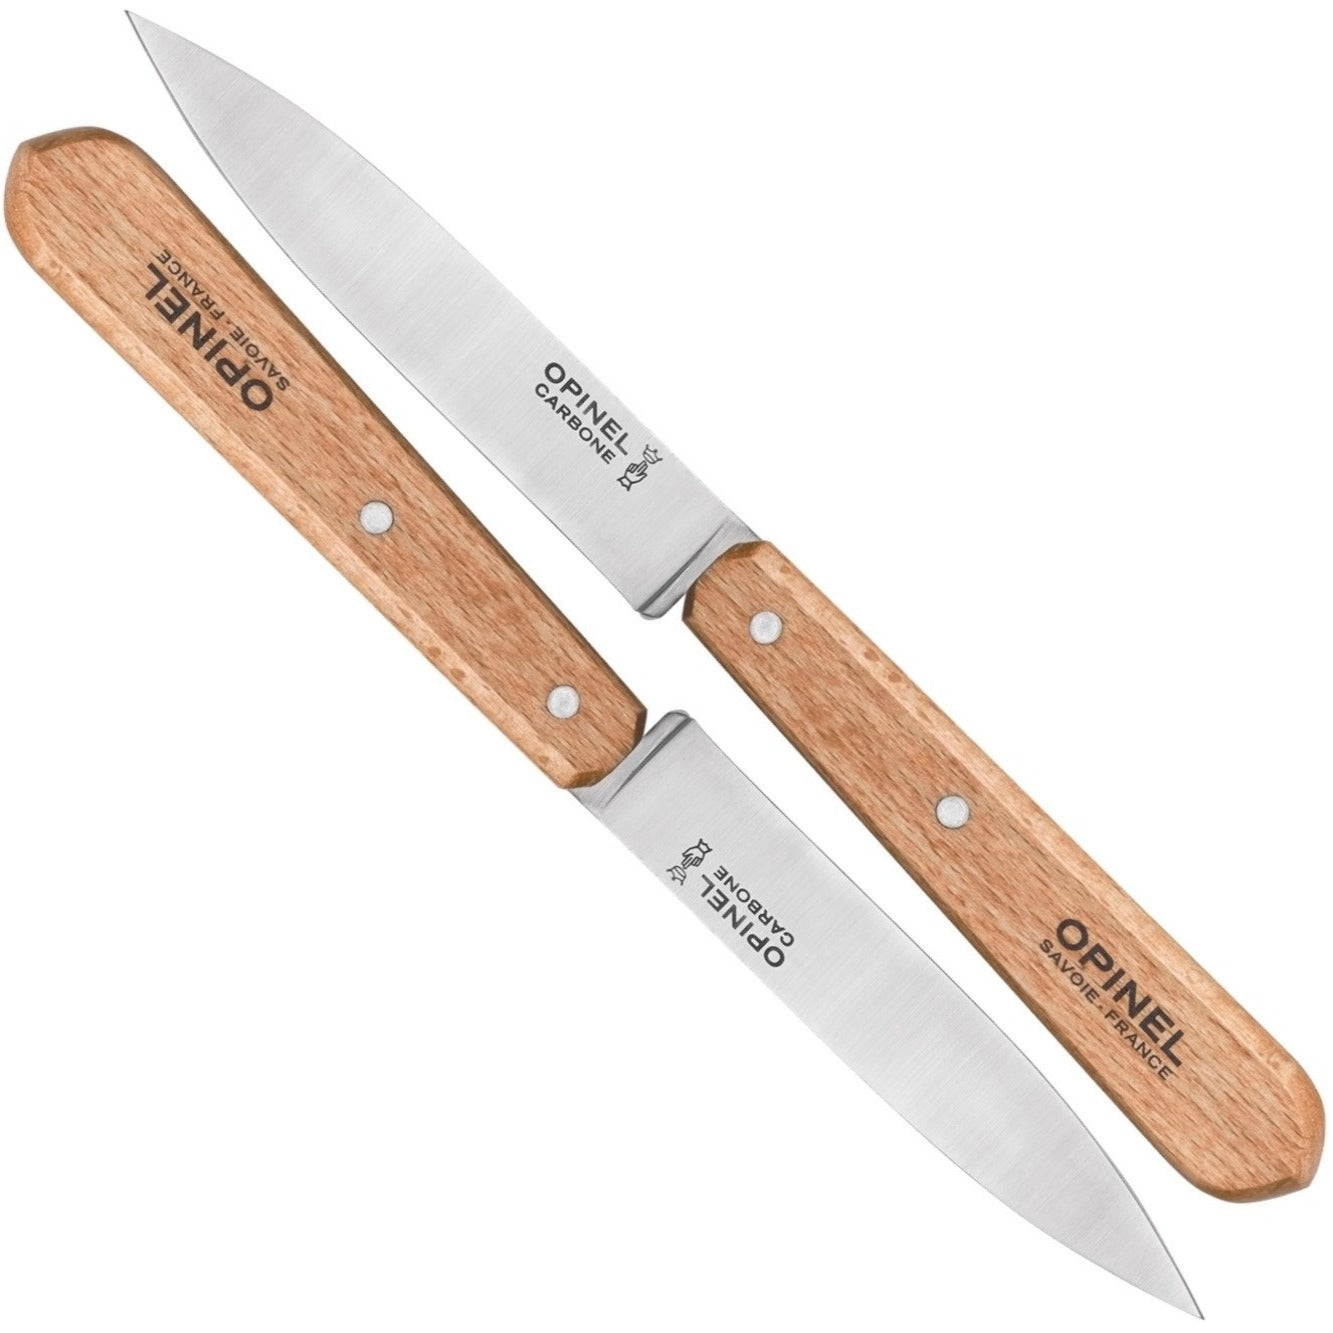 Carbon Steel 4 Paring Knives No.102 (Box Of 2) Small Kitchen Knife